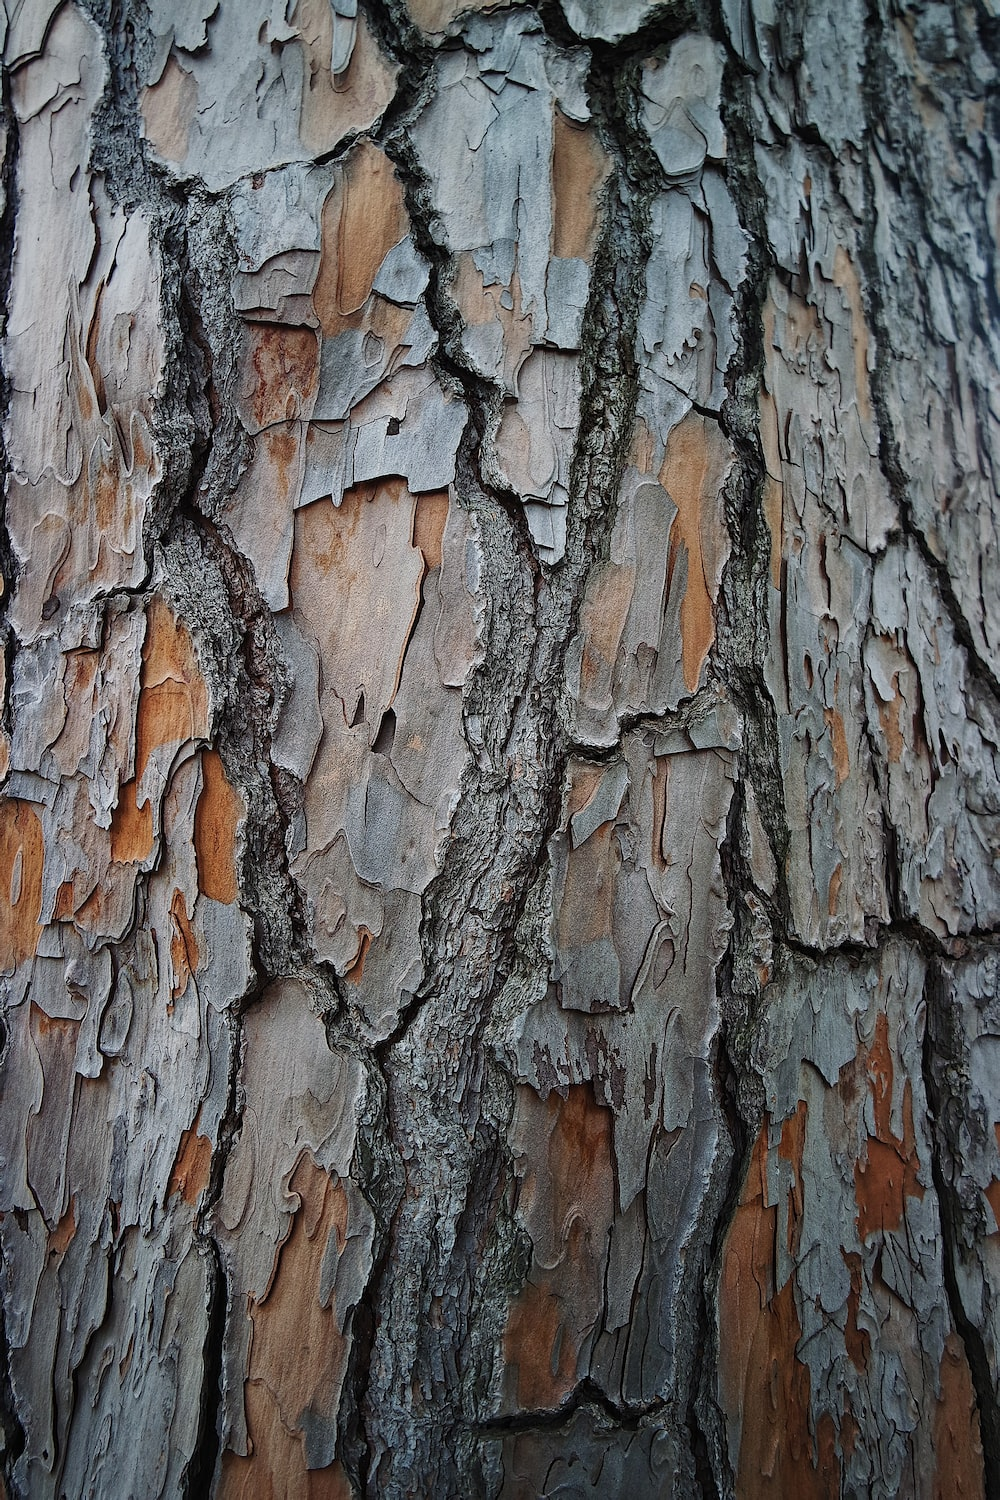 brown and gray tree trunk